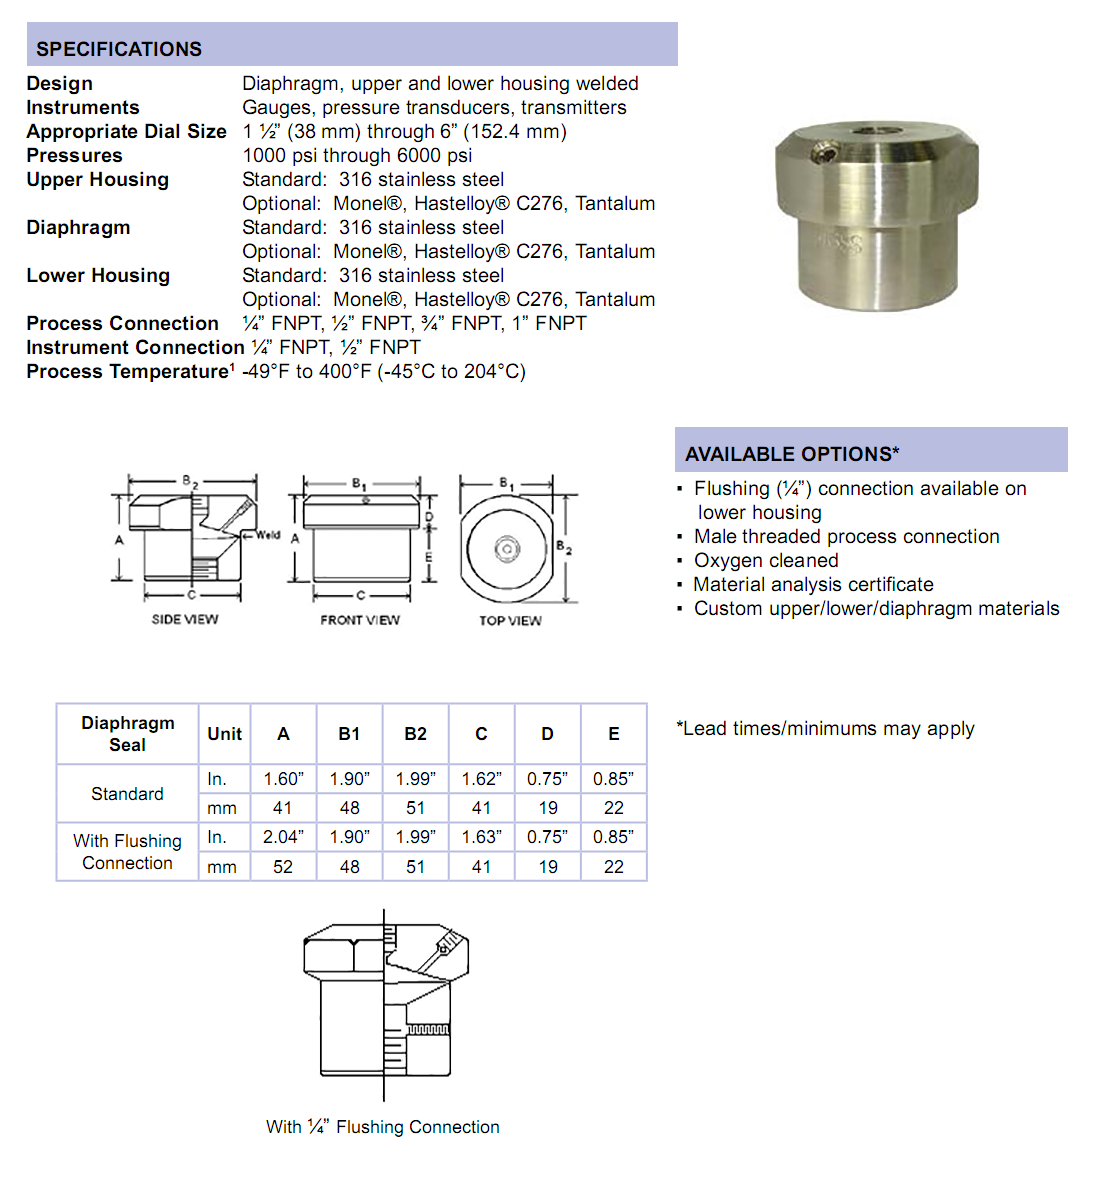 mhp-mini-high-pressure-diaphragm-seal-specifications